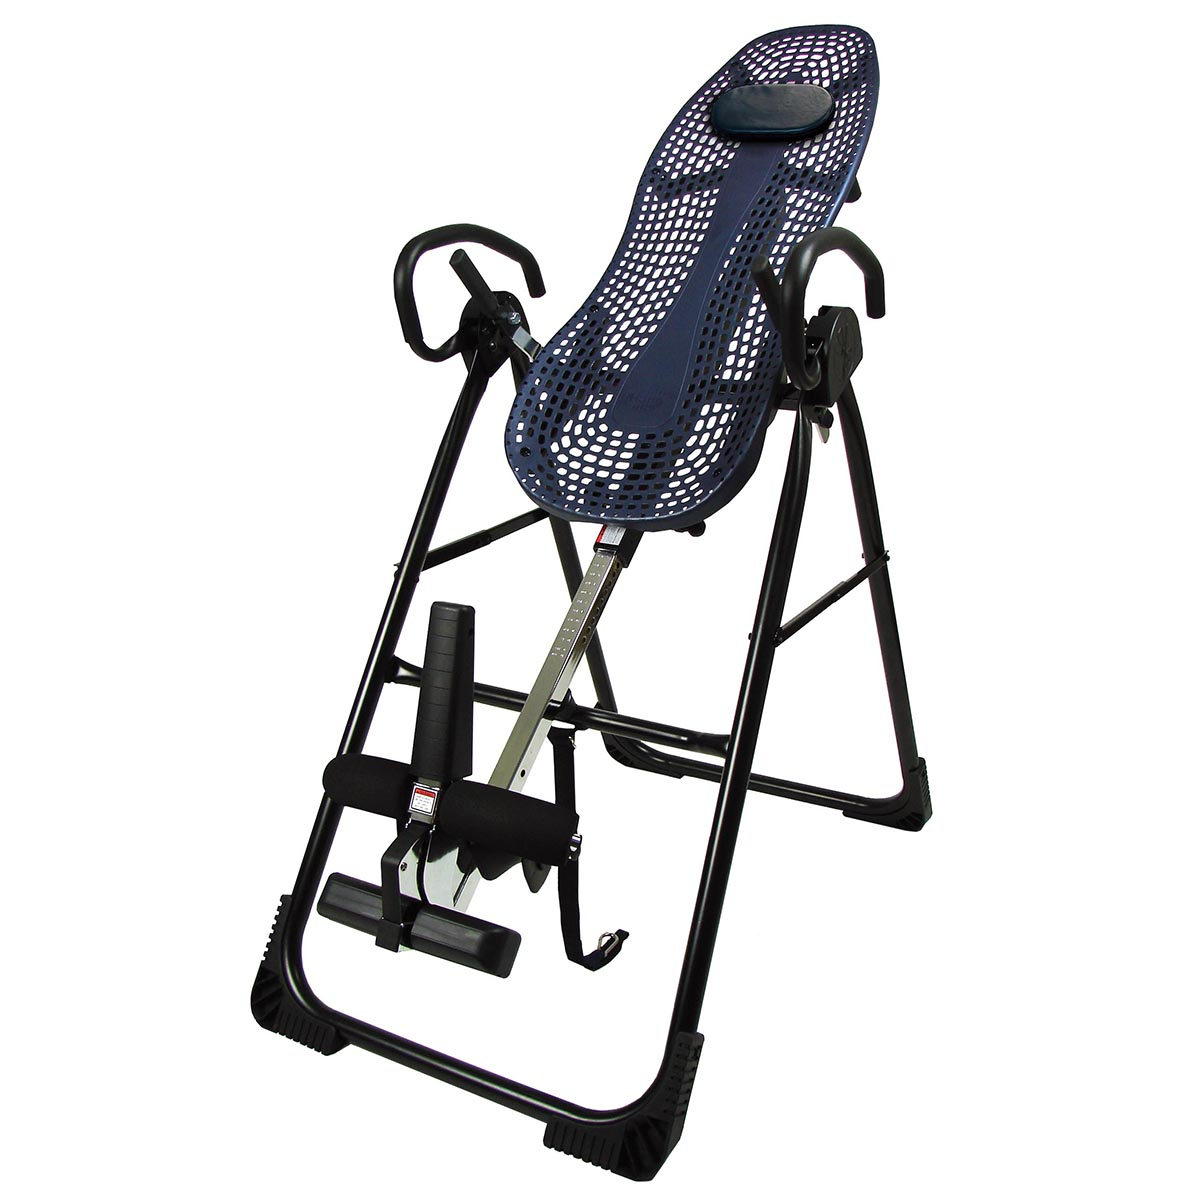 W63050 teeter ep 950 inversion table for Table inversion